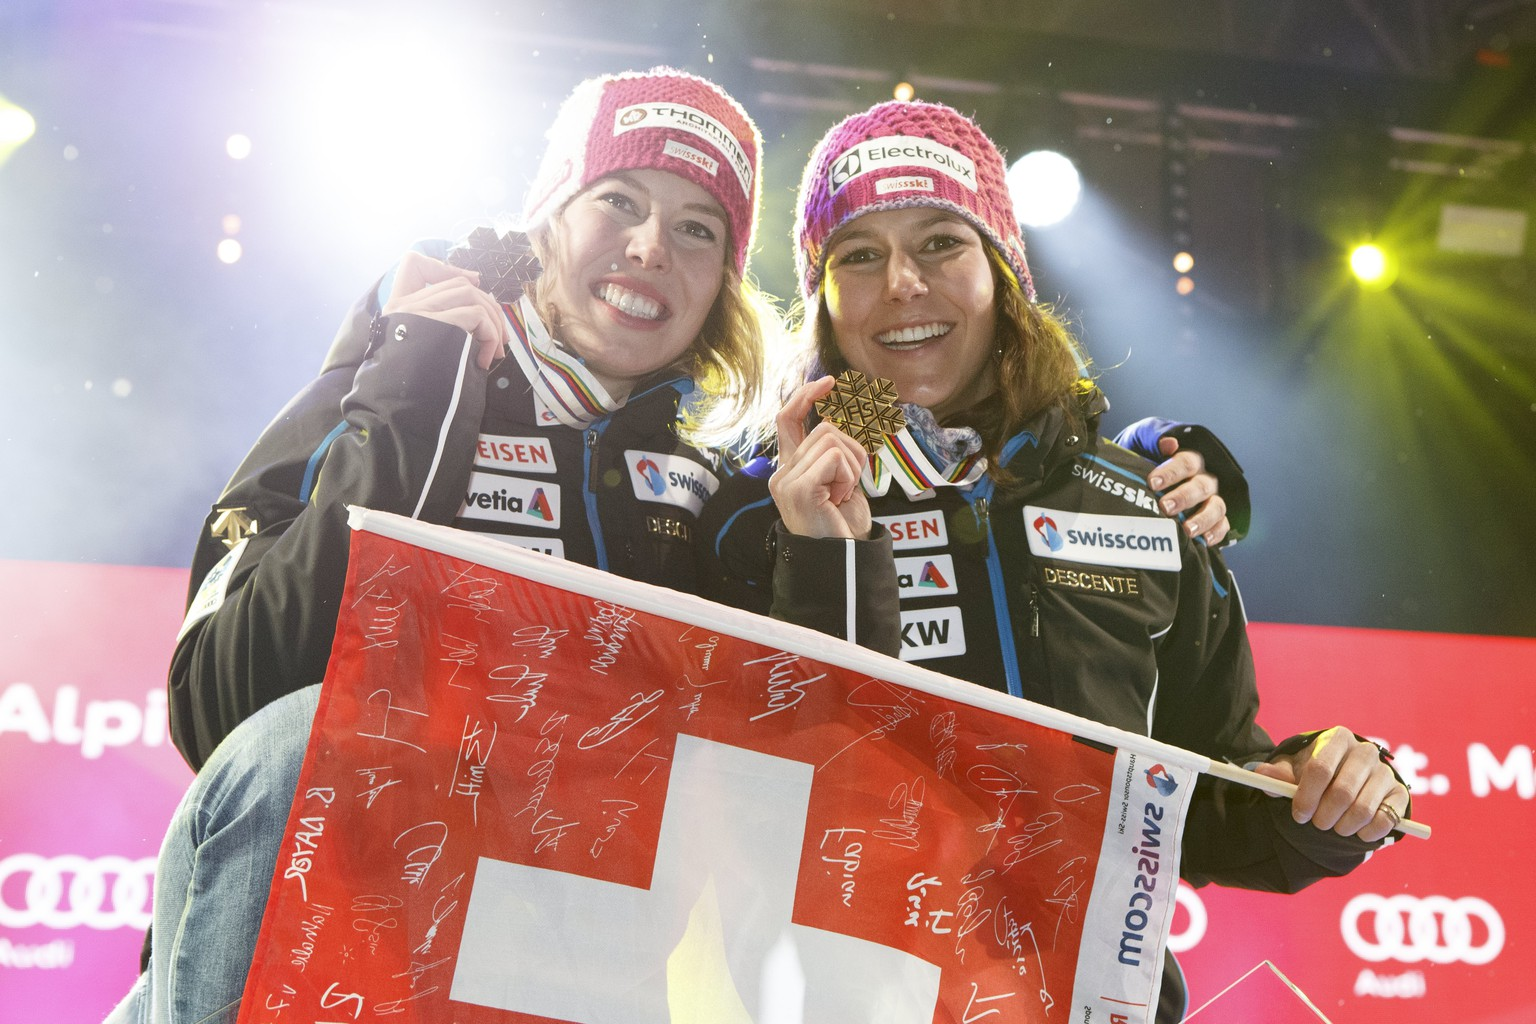 epa05783572 Silver medalist Michelle Gisin (L) and Gold medalist Wendy Holdener of Switzerland, celebrate during the Women's Combined competition winner's presentation at the 2017 FIS Alpine Skiing World Championships in St. Moritz, Switzerland, 10 February 2017.  EPA/ALEXANDRA WEY